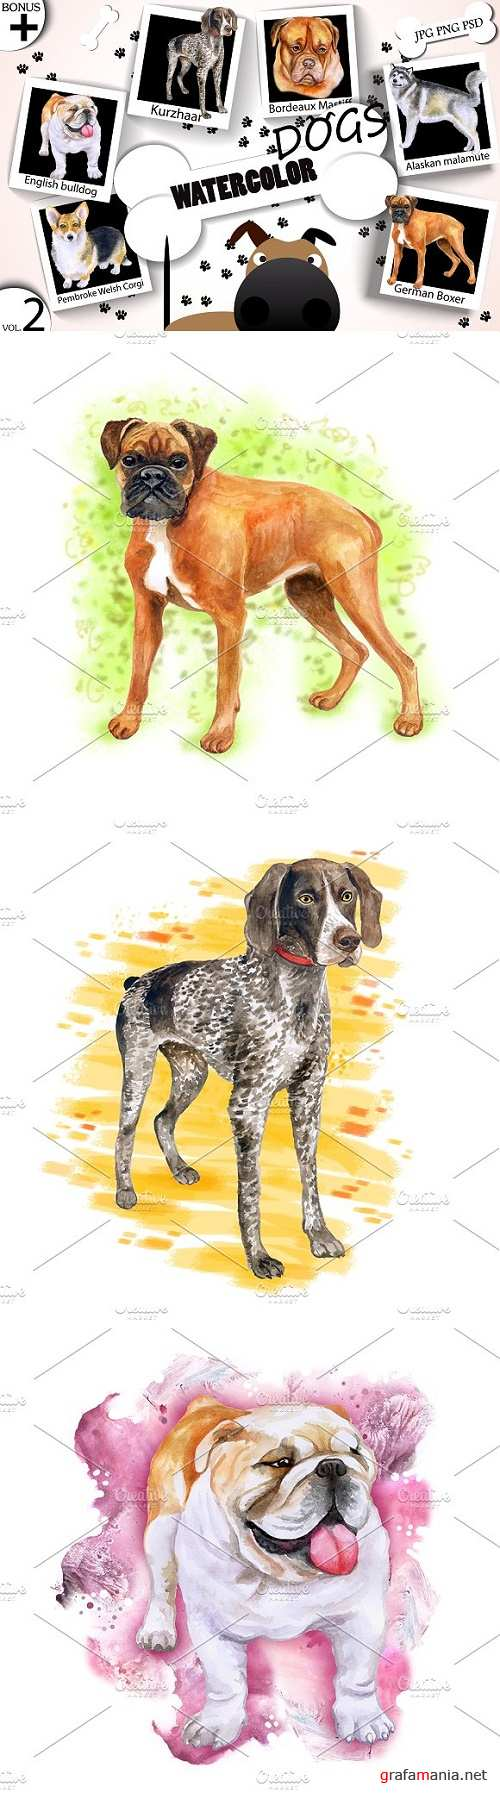 Watercolor Dogs - Collection 2 of 12 - 1717039